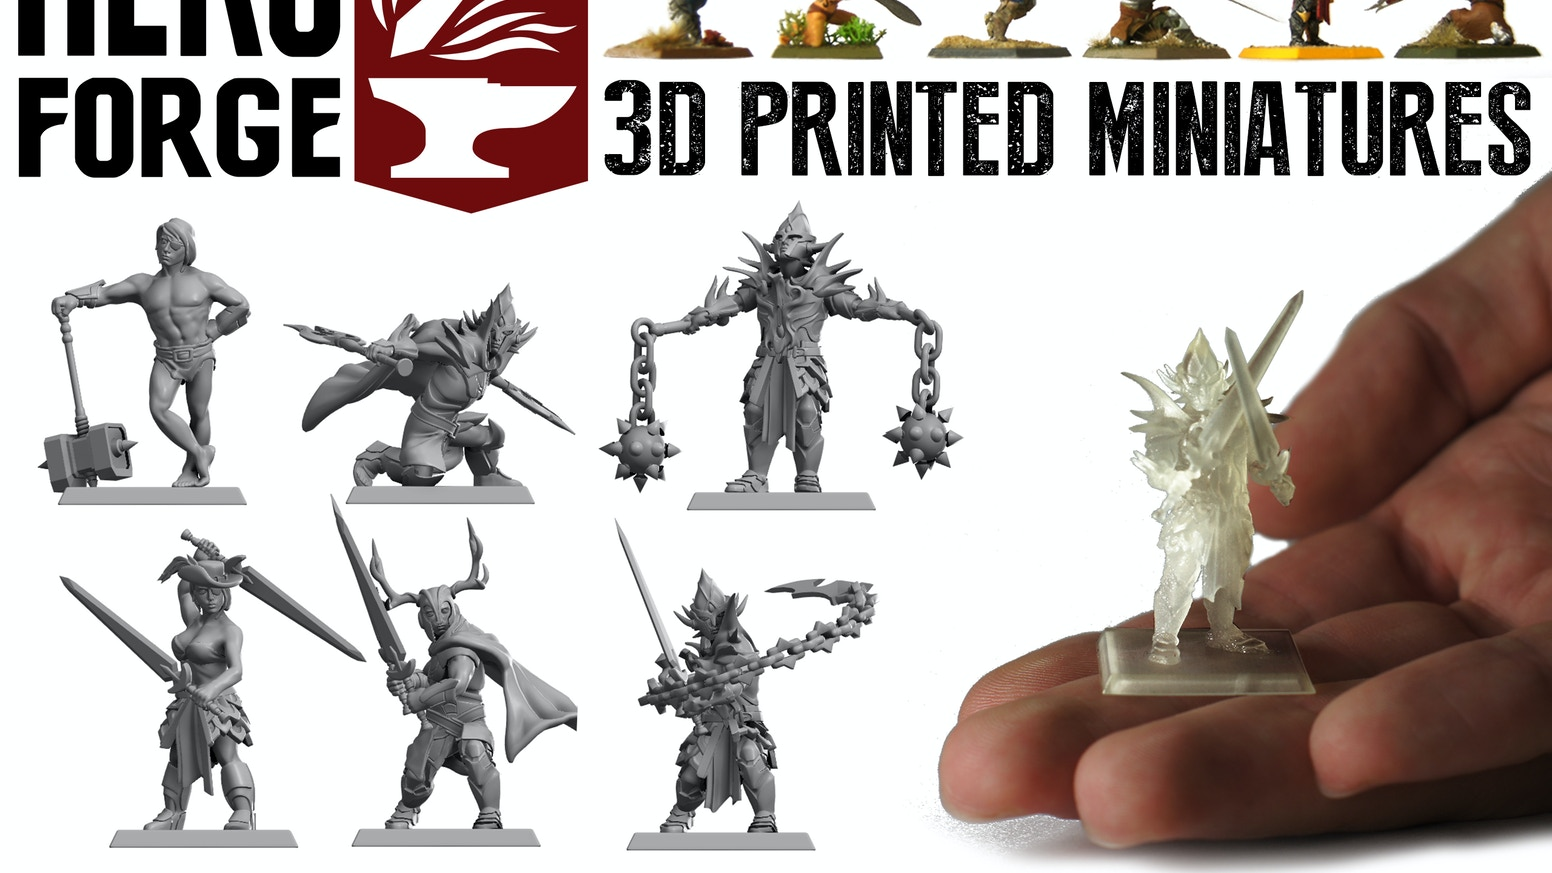 e274471f6c A service that lets you customize your perfect miniature using our web UI